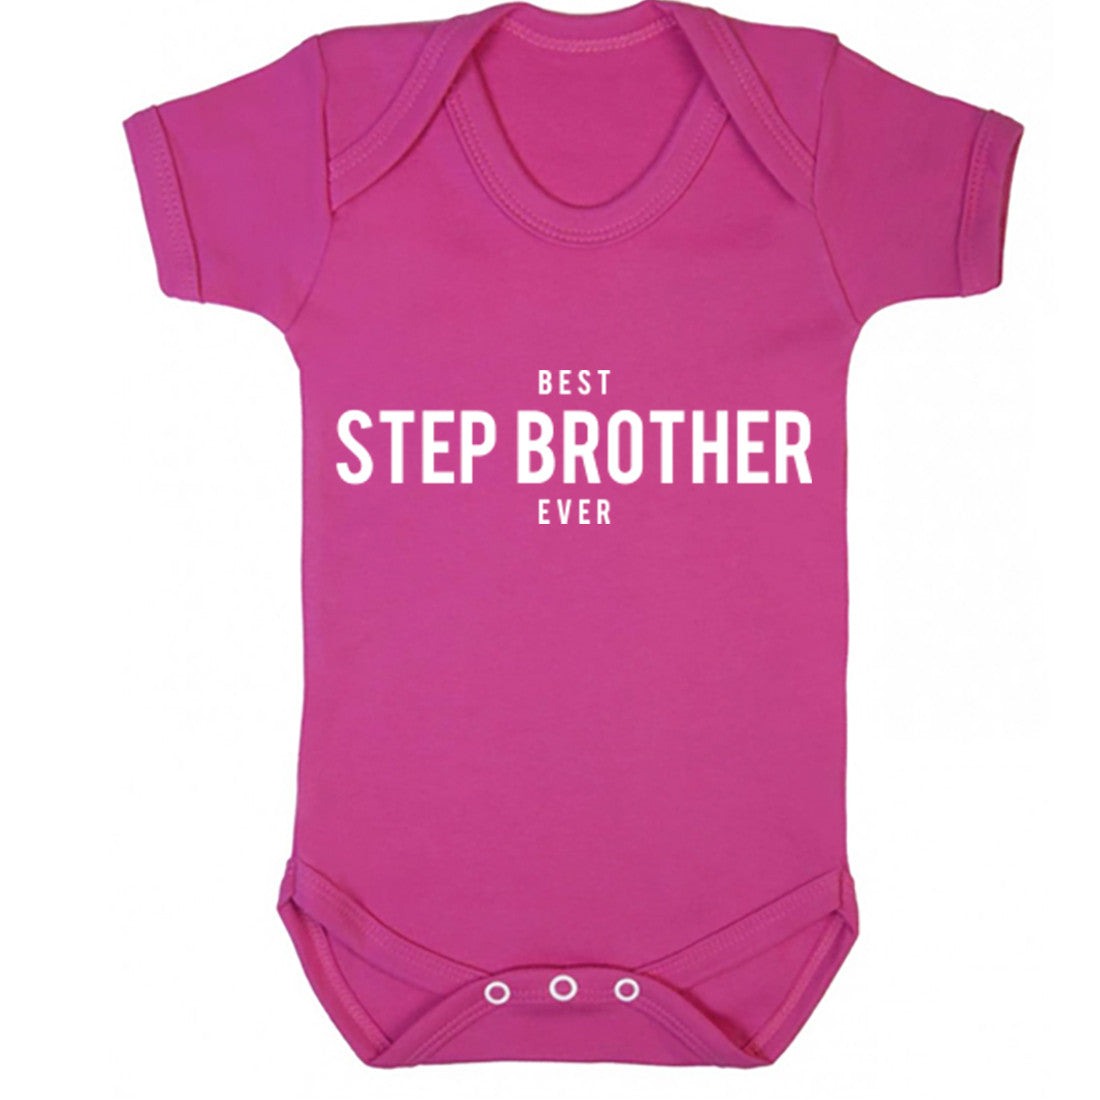 Best Step Brother Ever Baby Vest K1470